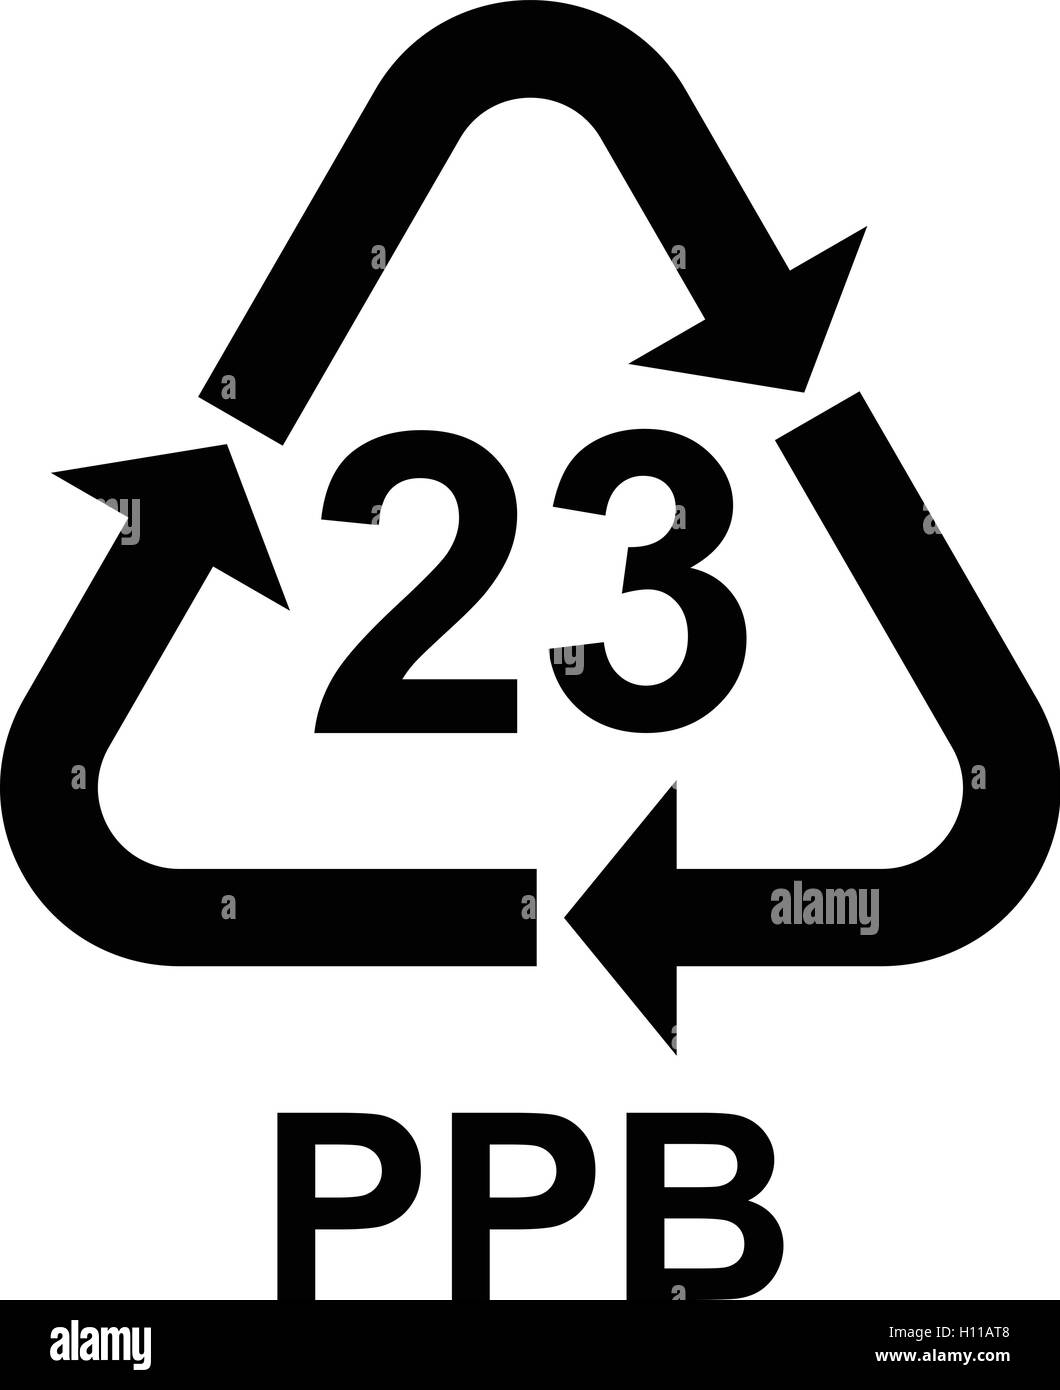 Paper recycling symbol PAP 23 paperboard, vector illustration. - Stock Vector